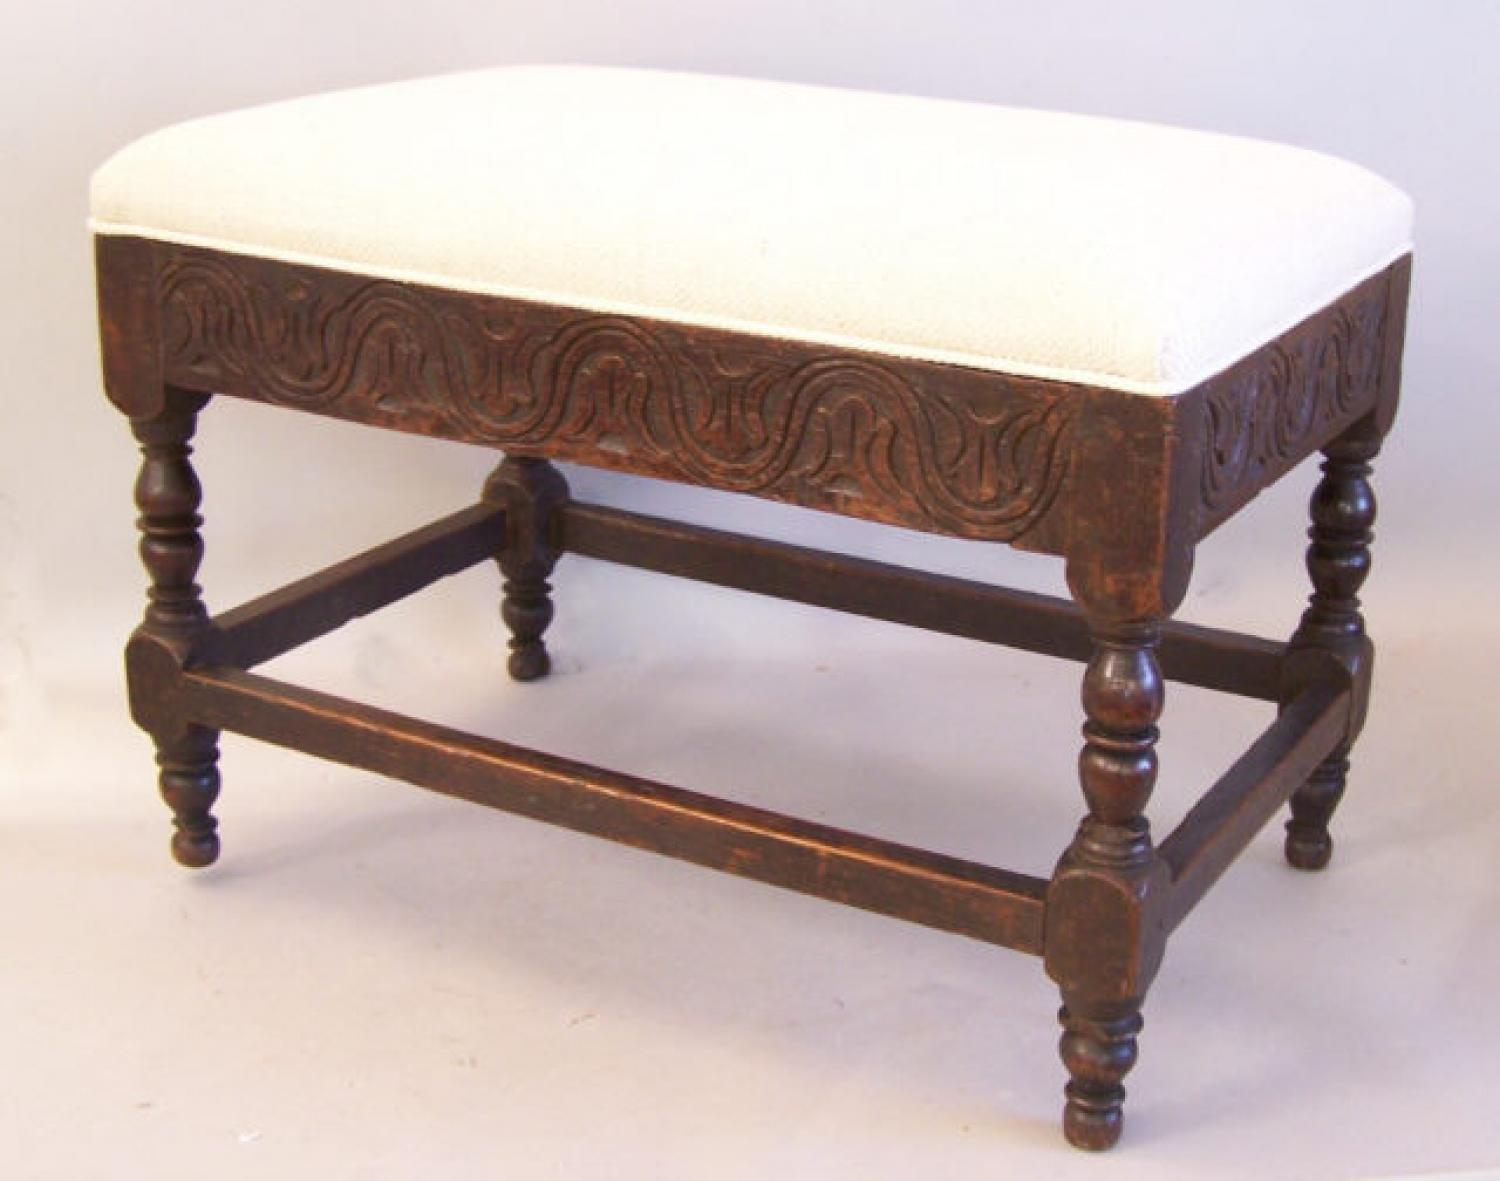 18th century English carved oak bench